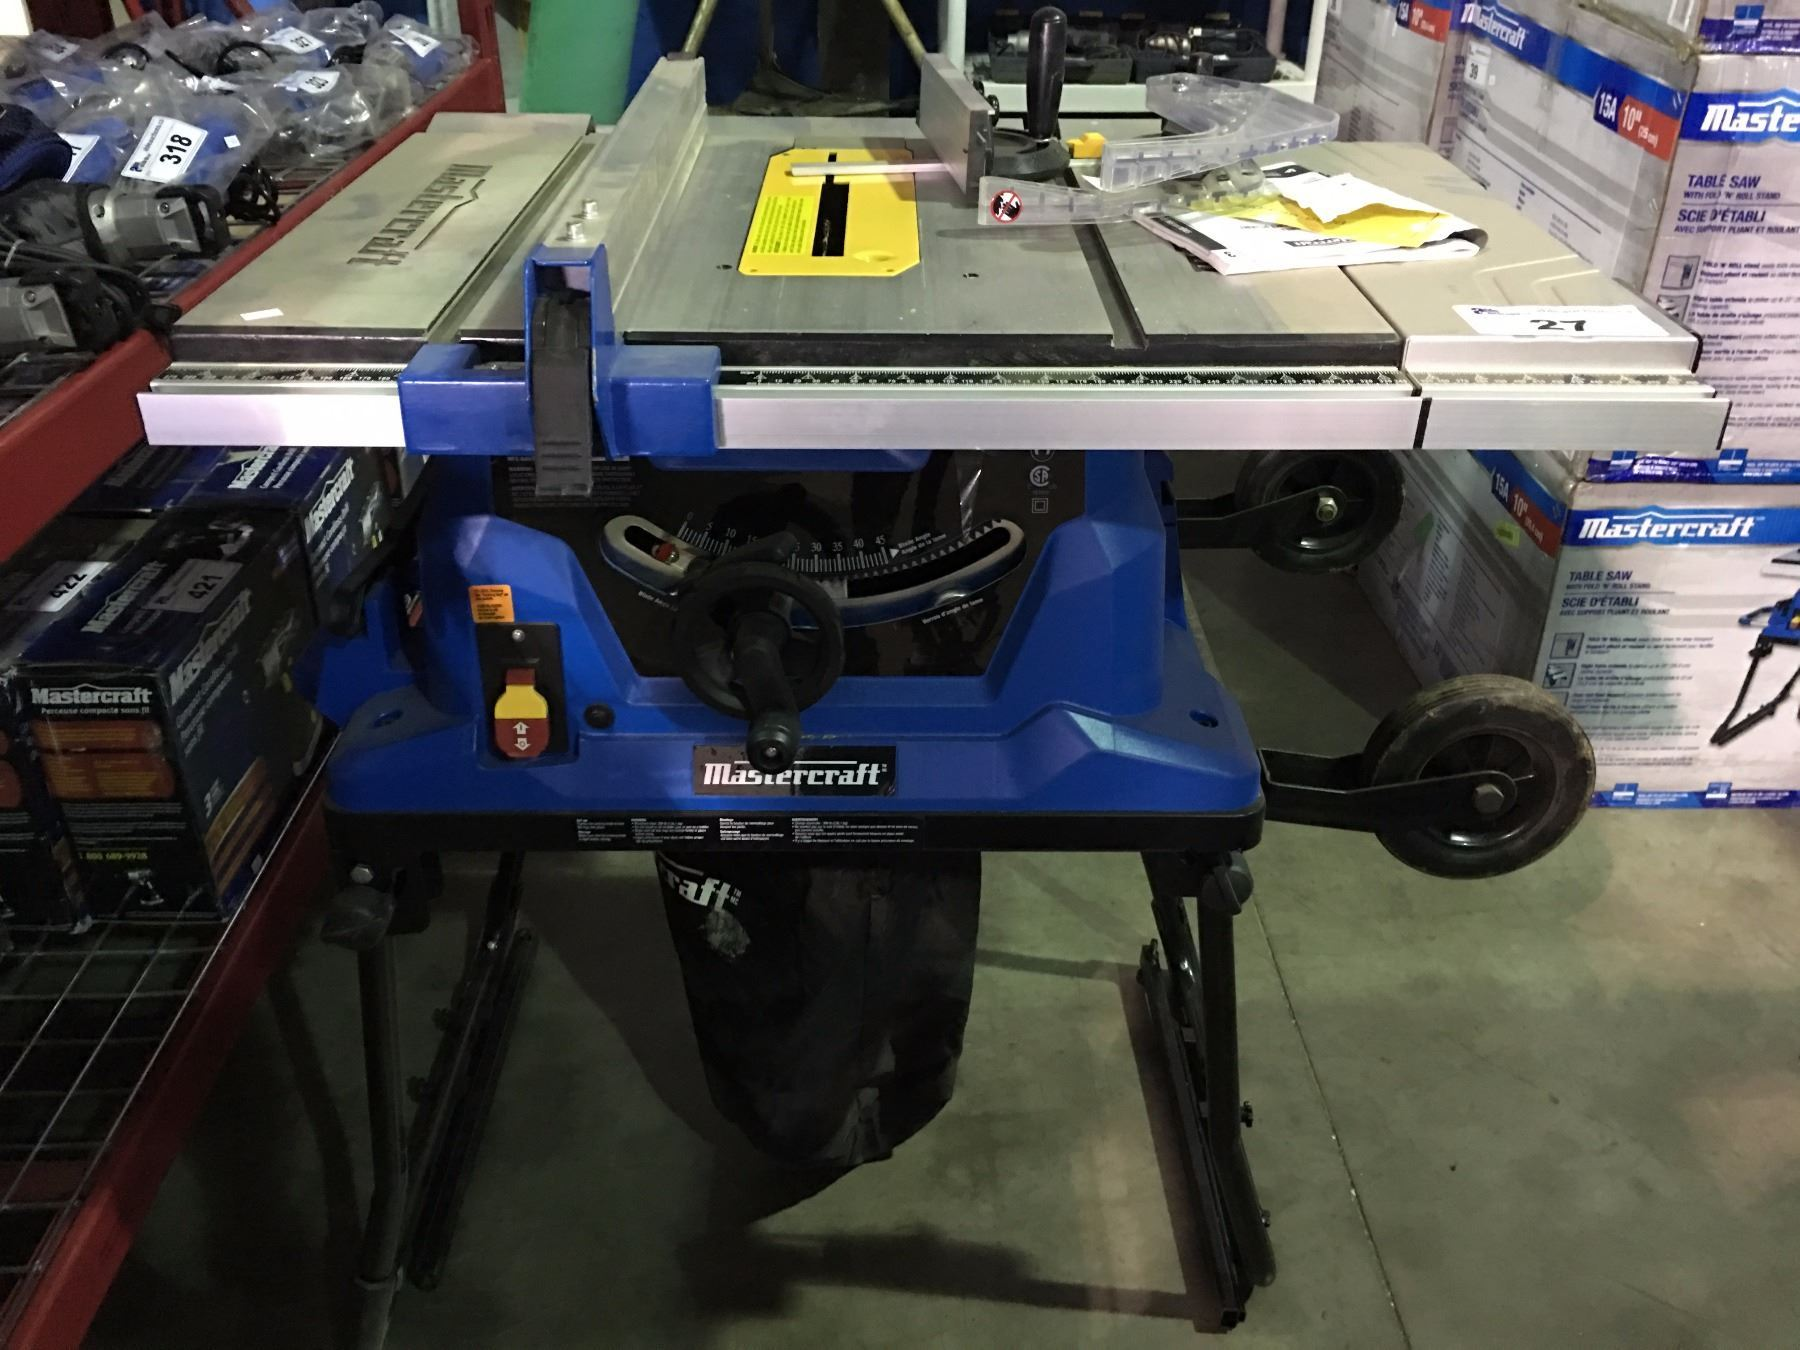 Mastercraft 1015amp table saw with fold roll stand image 1 mastercraft 1015amp table saw with fold roll stand greentooth Choice Image